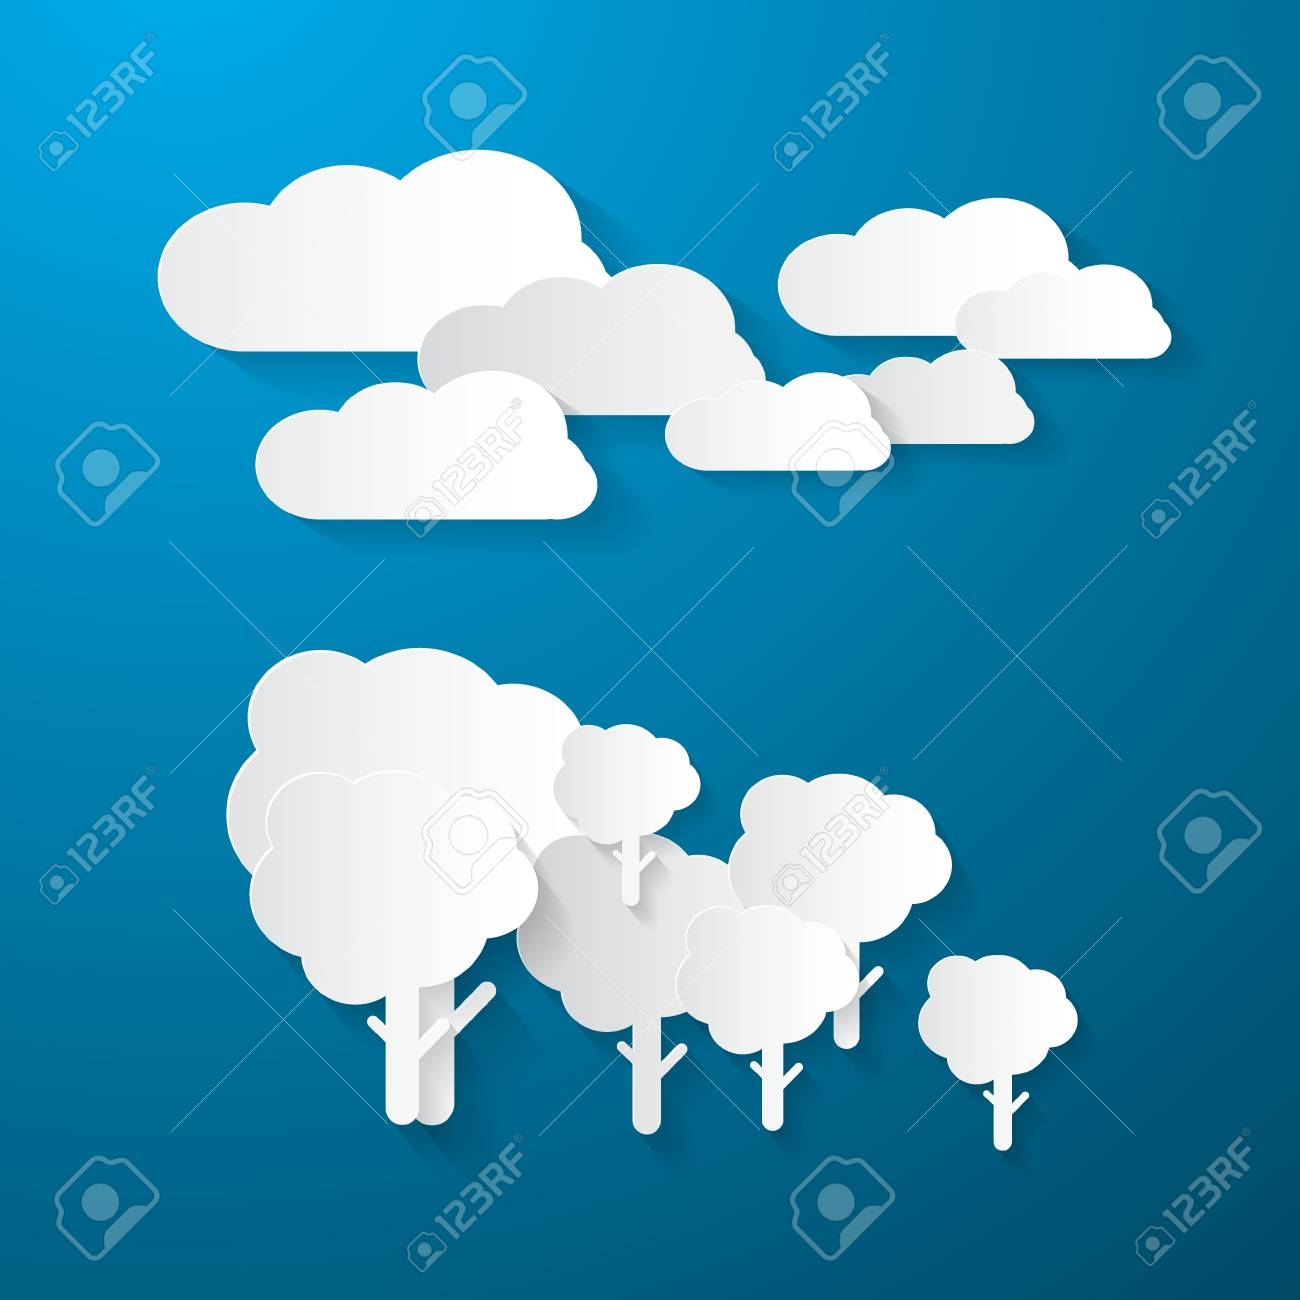 Paper Clouds and Trees on Blue Background Stock Vector - 24754378